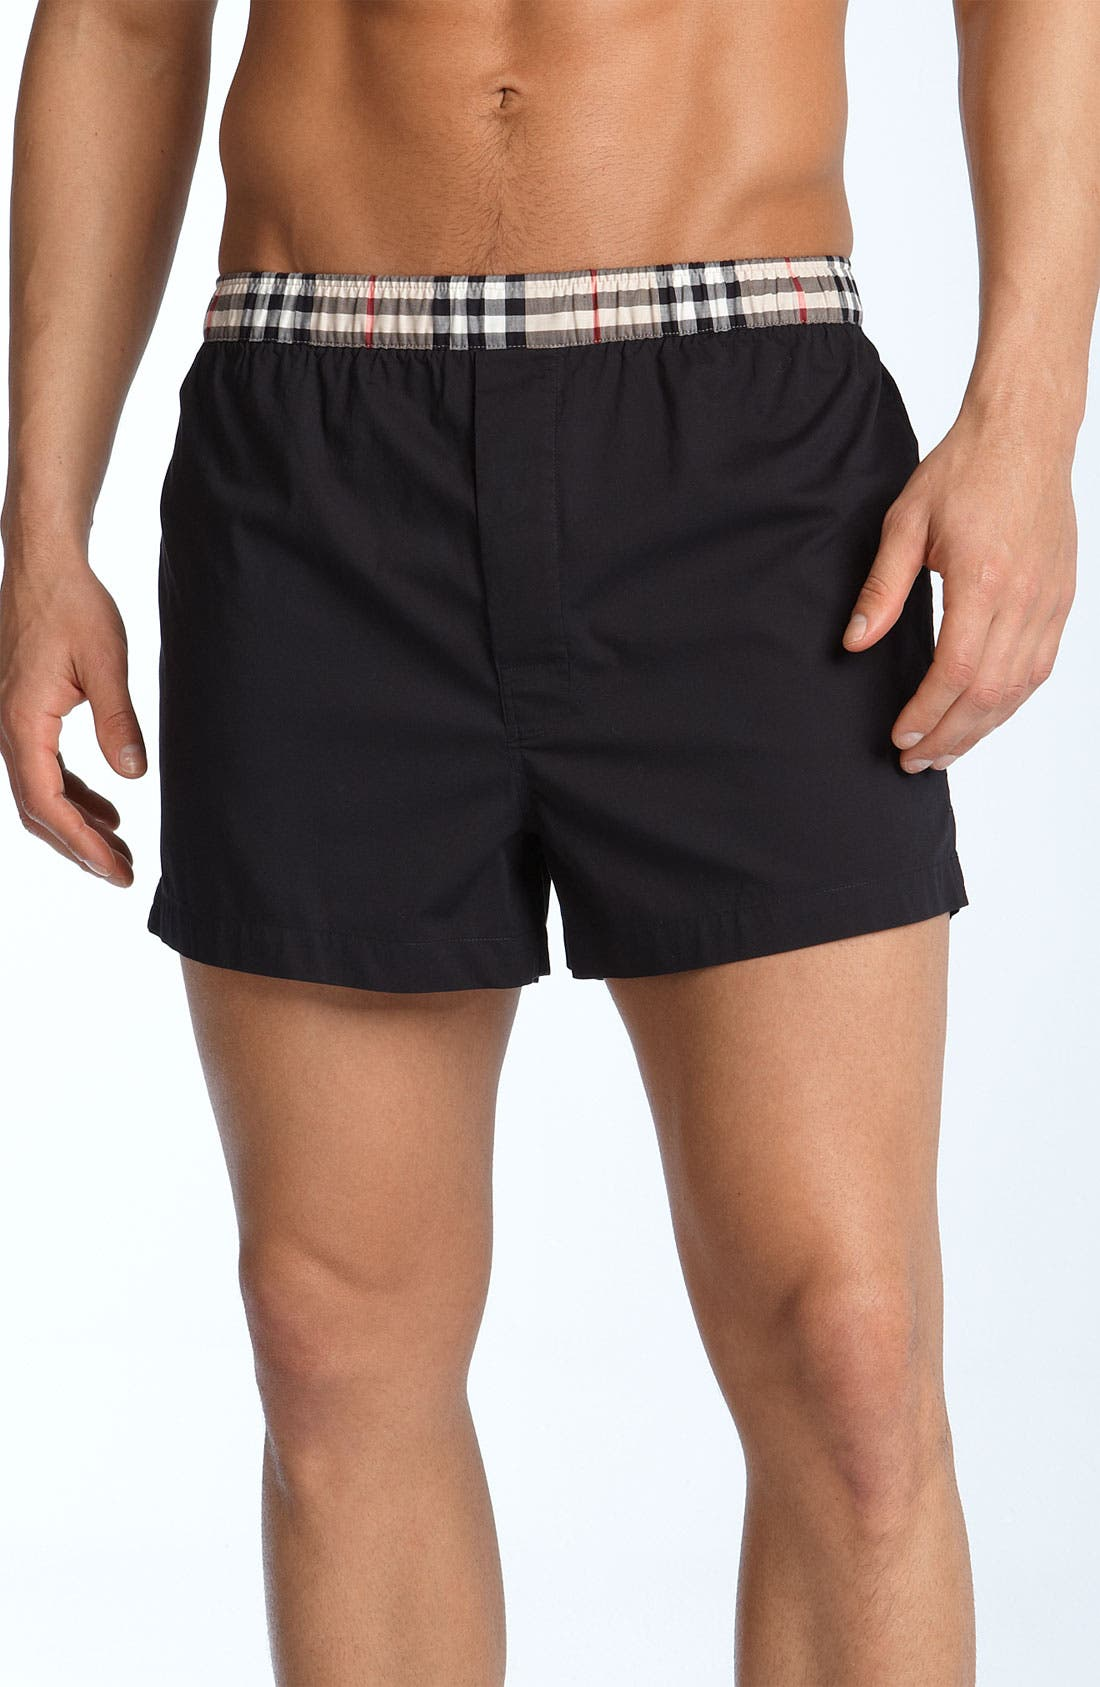 Main Image - Burberry Check Print Woven Boxer Shorts